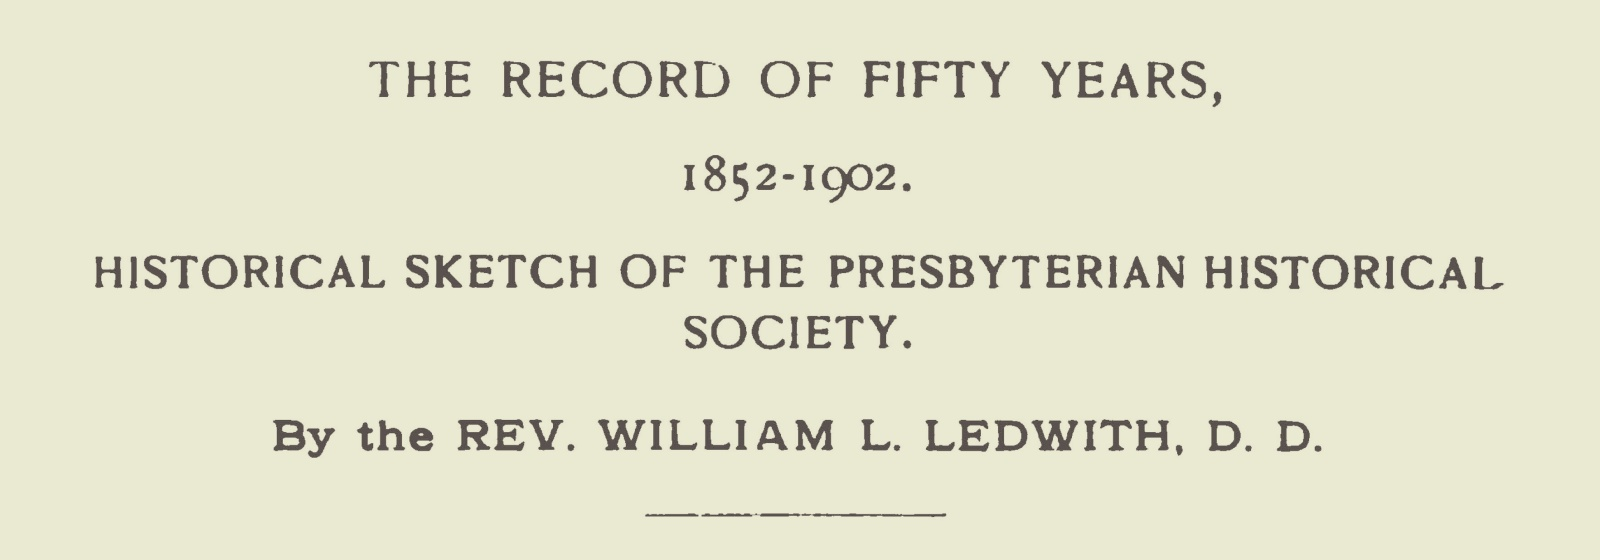 Ledwith, William Laurence, The Record of Fifty Years Title Page.jpg